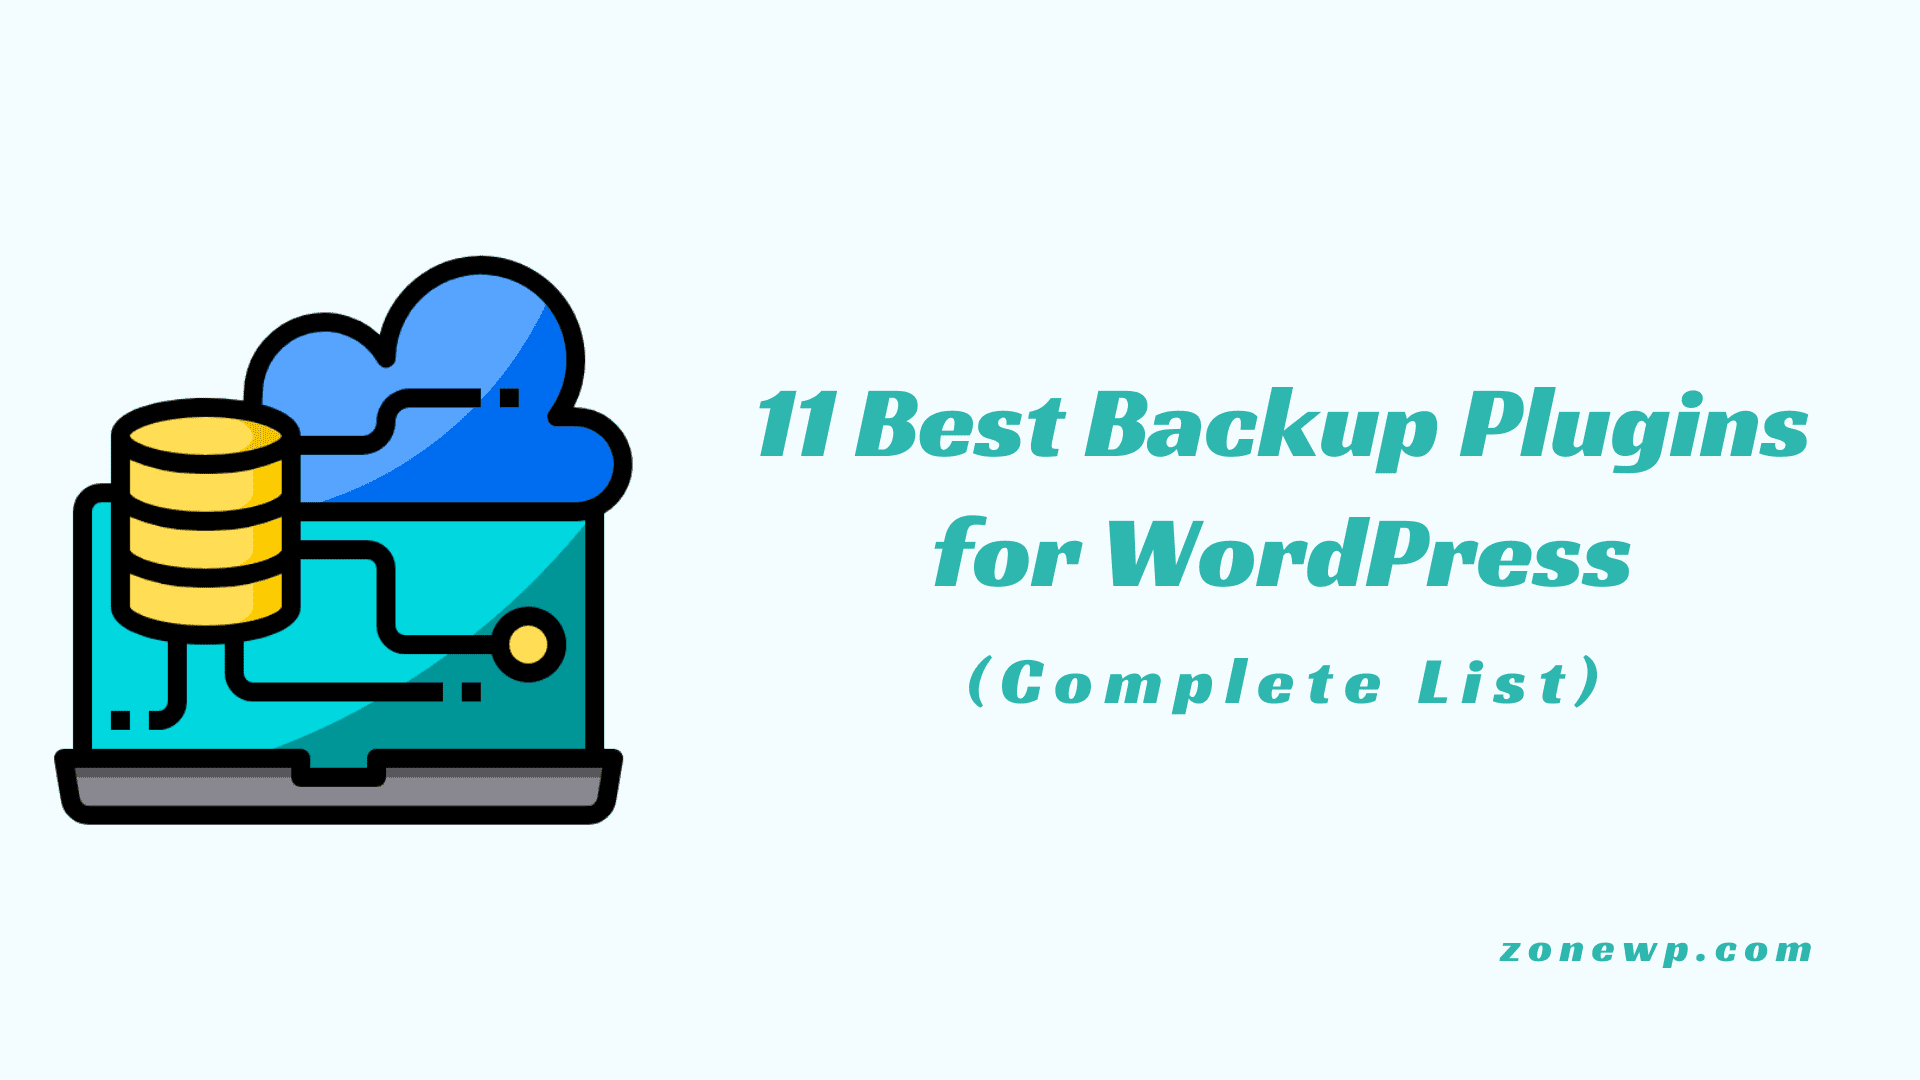 11 Best Backup Plugins for WordPress